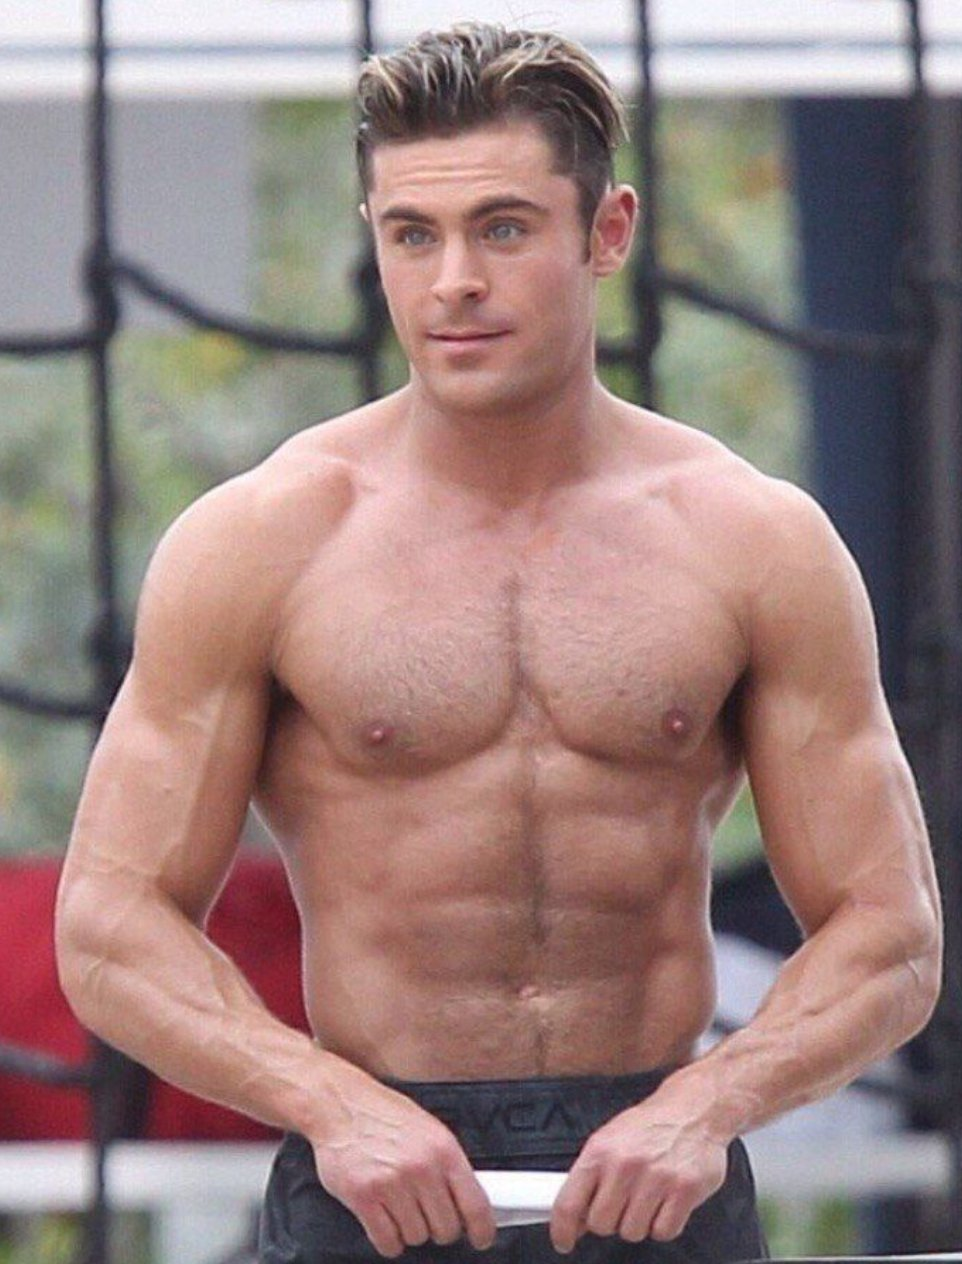 I just wanna say happy birthday to zac efron, my absolute favorite.